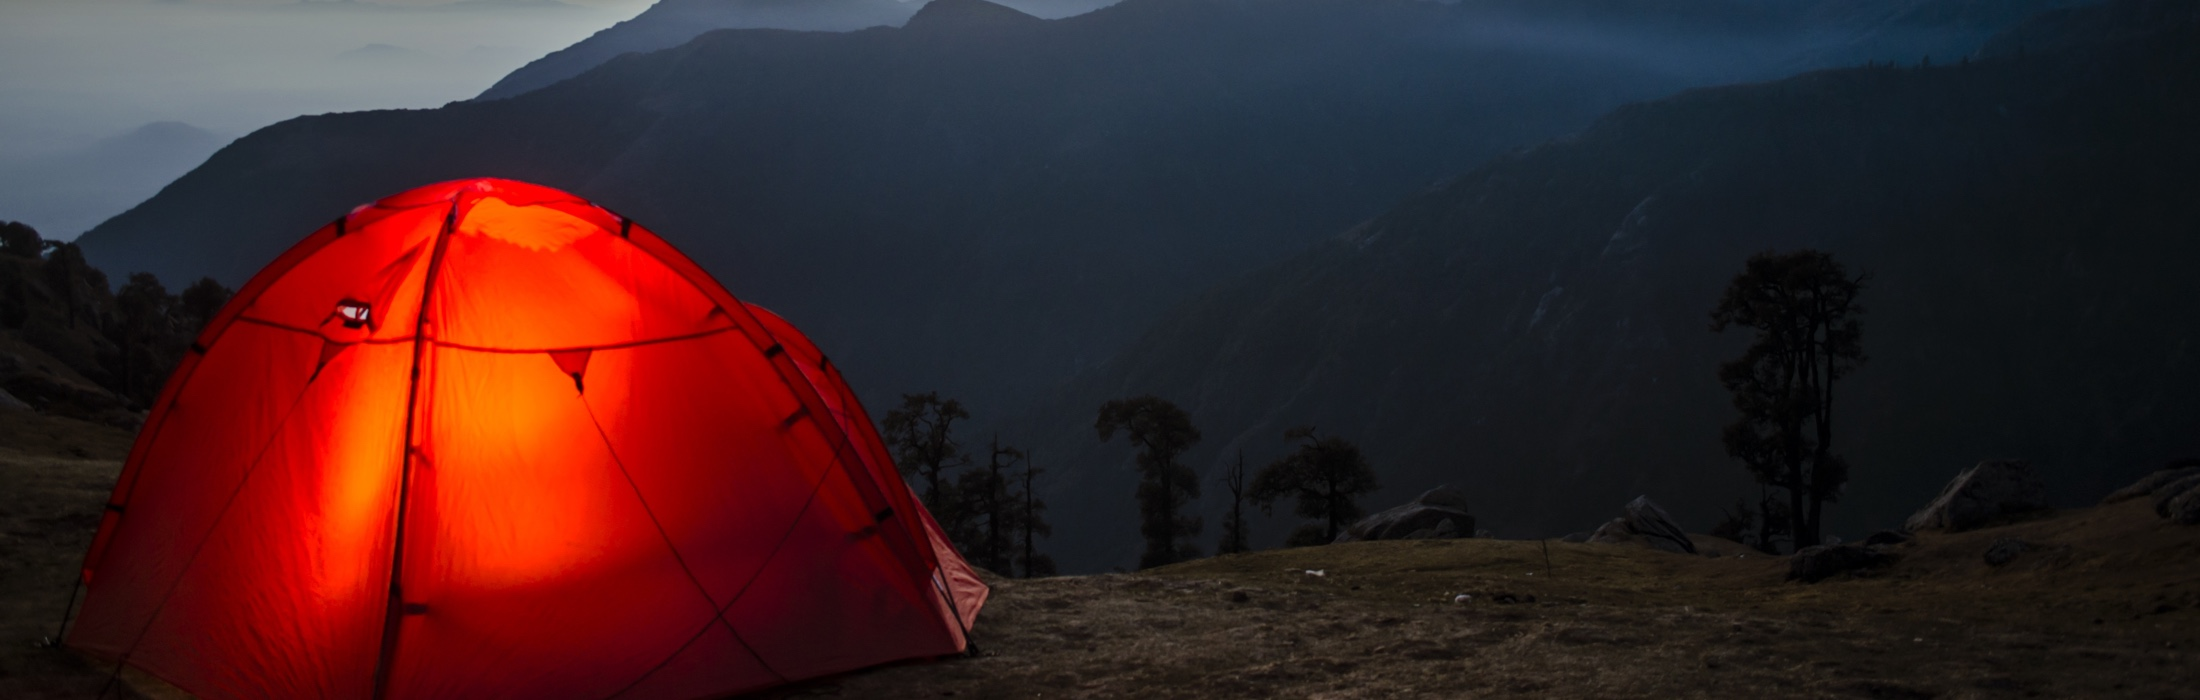 Tent and gear.